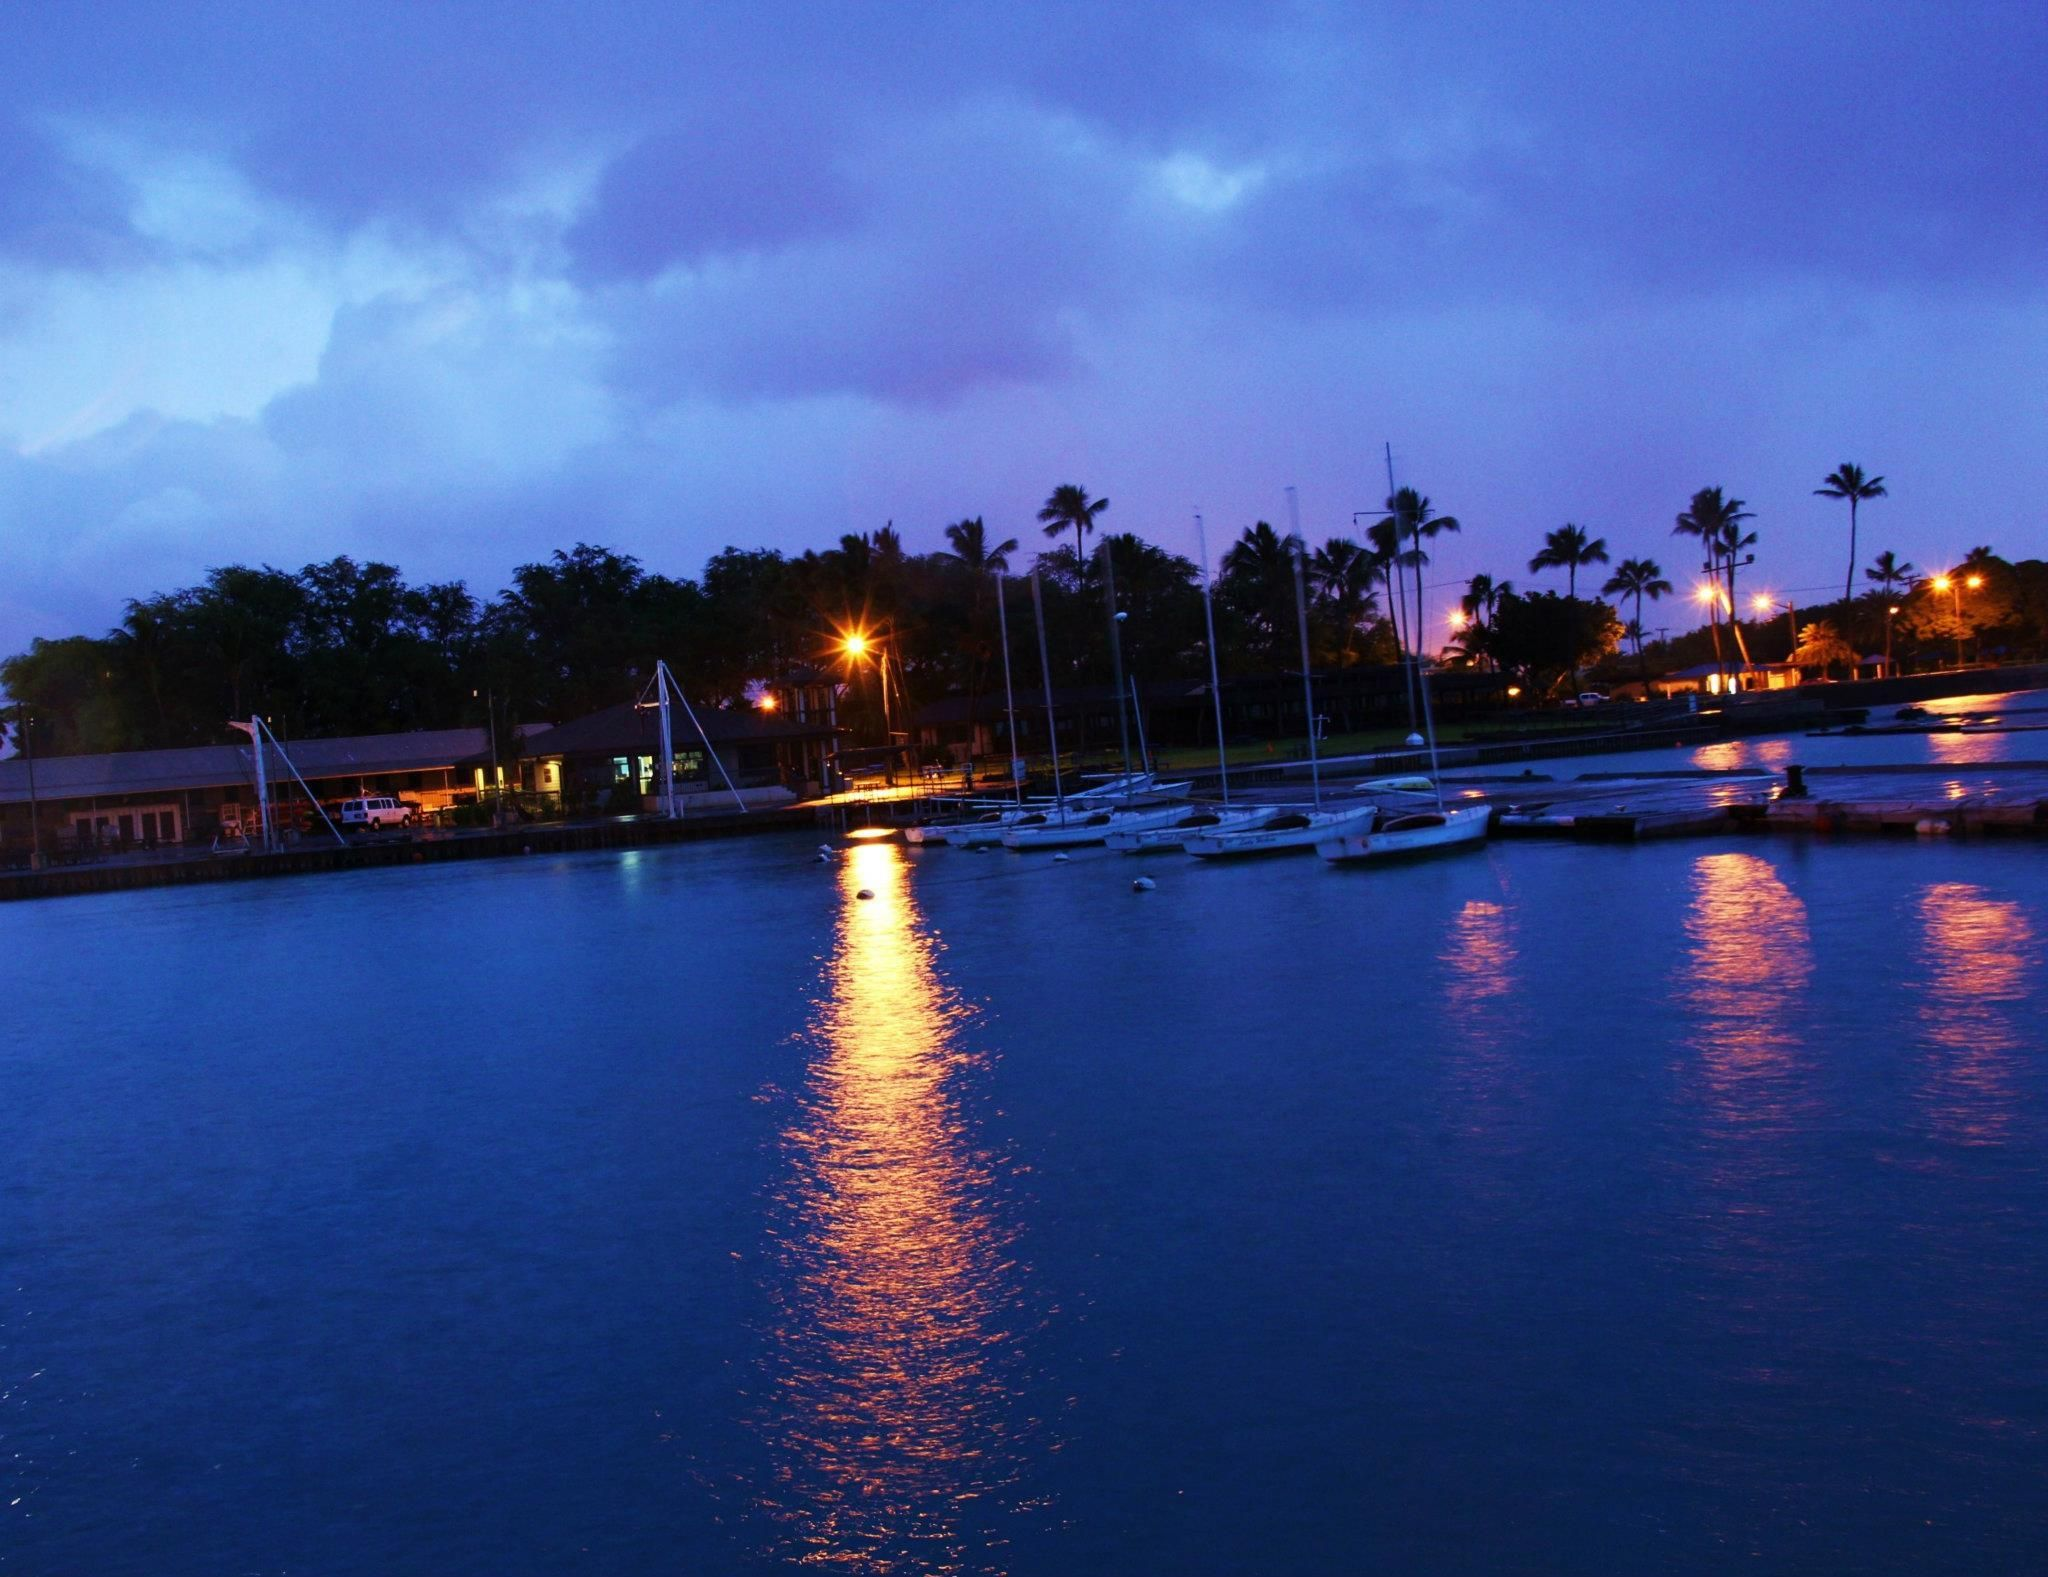 Hickam Air Force Base, Oahu, Hawai'i. LOVED THIS PLACE AS